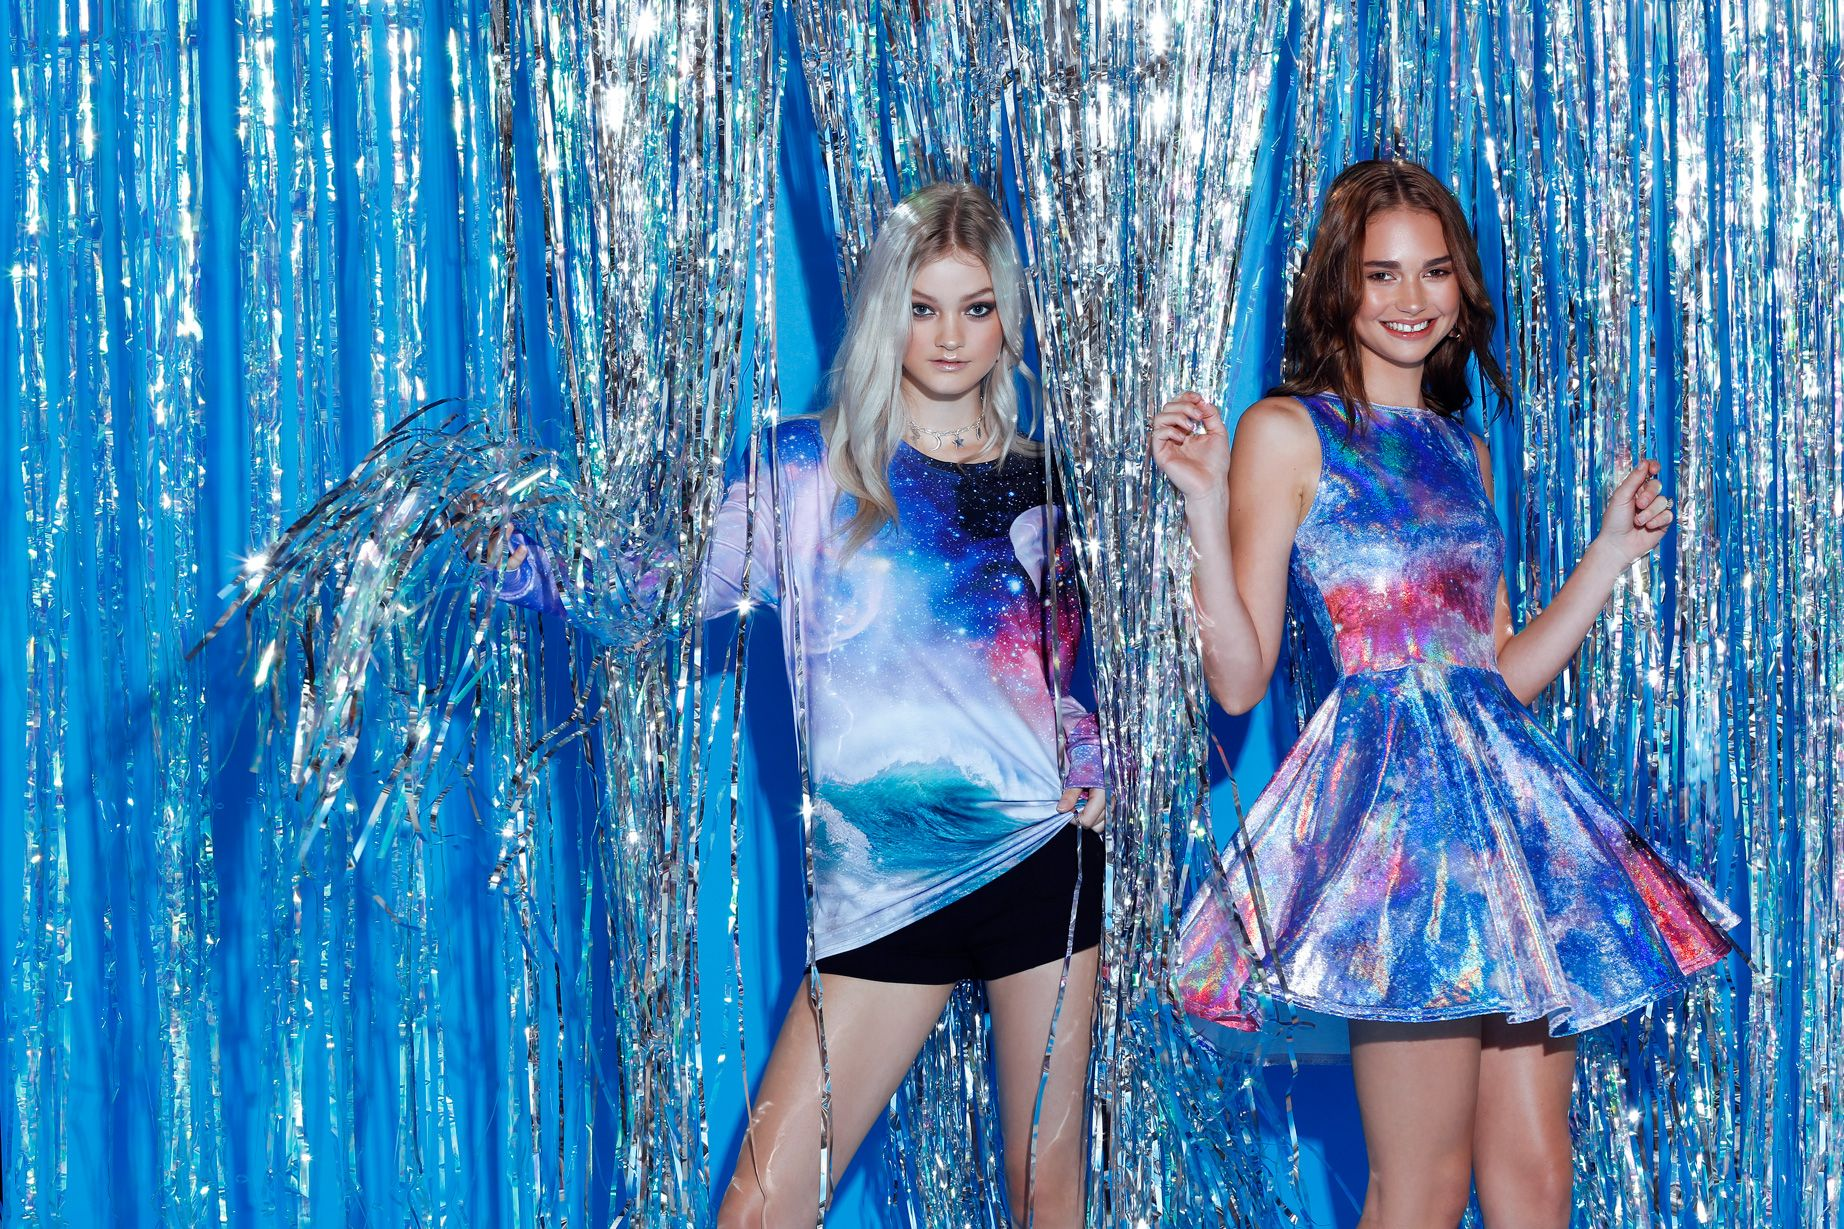 aacb20bd689c82 Galaxy Wave Long Sleeve BFT – 7 DAY UNLIMITED ($80AUD), Galaxy Angel Iced  Velvet Princess Skater Dress – LIMITED ($99AUD) by BlackMilk Clothing